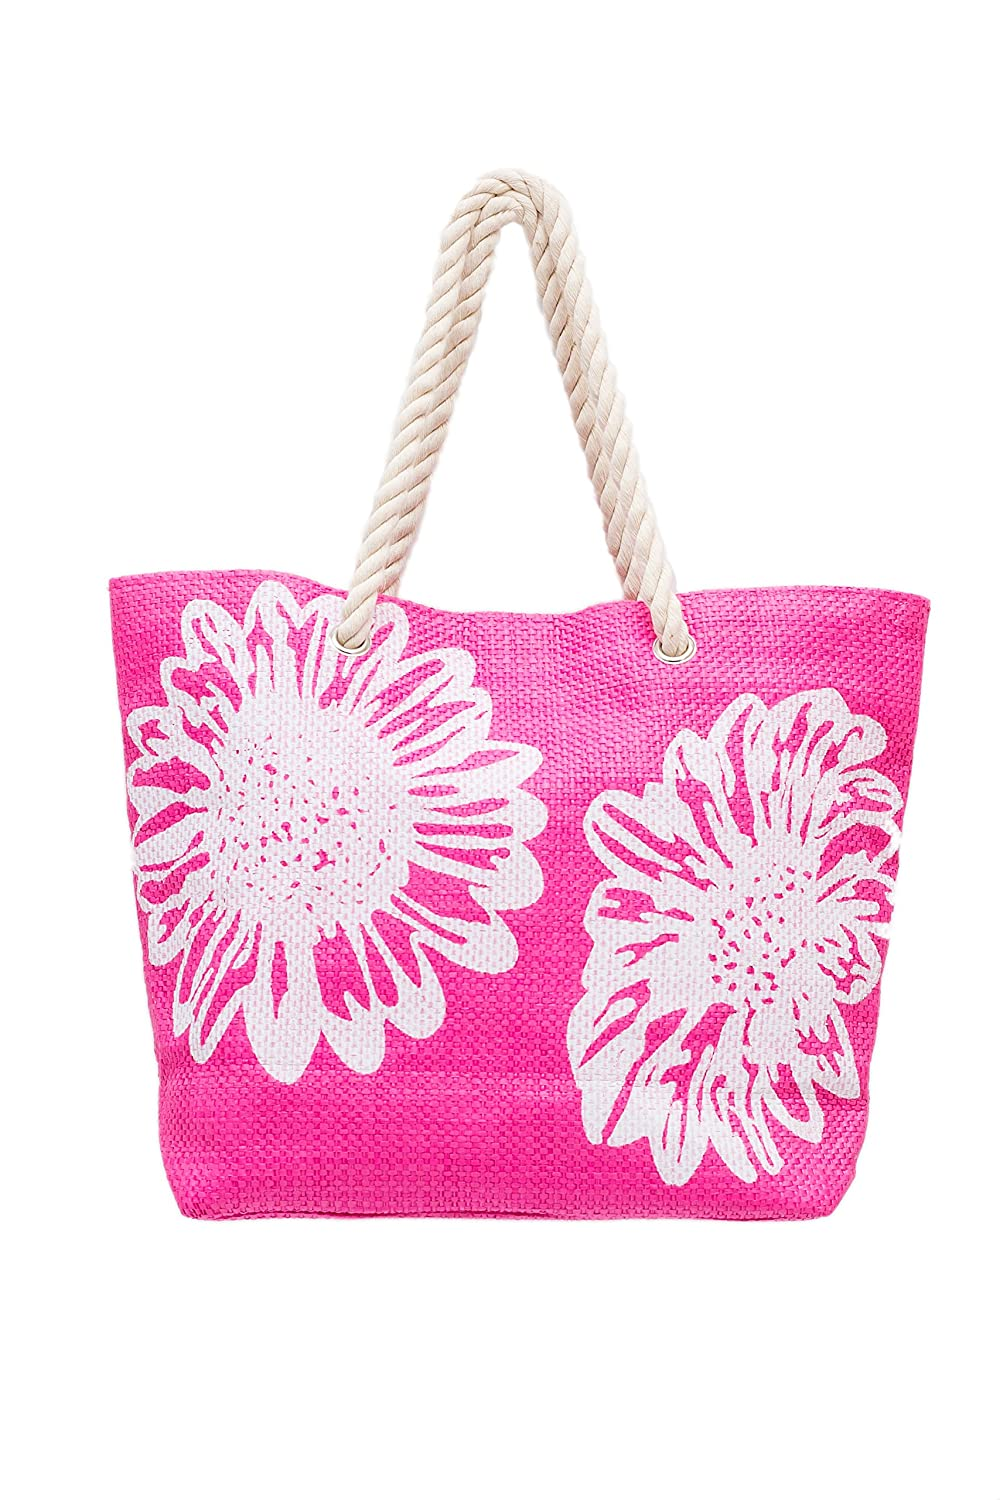 Beach Bag for Women Summer Tote Shoulder Bag Shopper for Girls Ladies 46 x 33cms